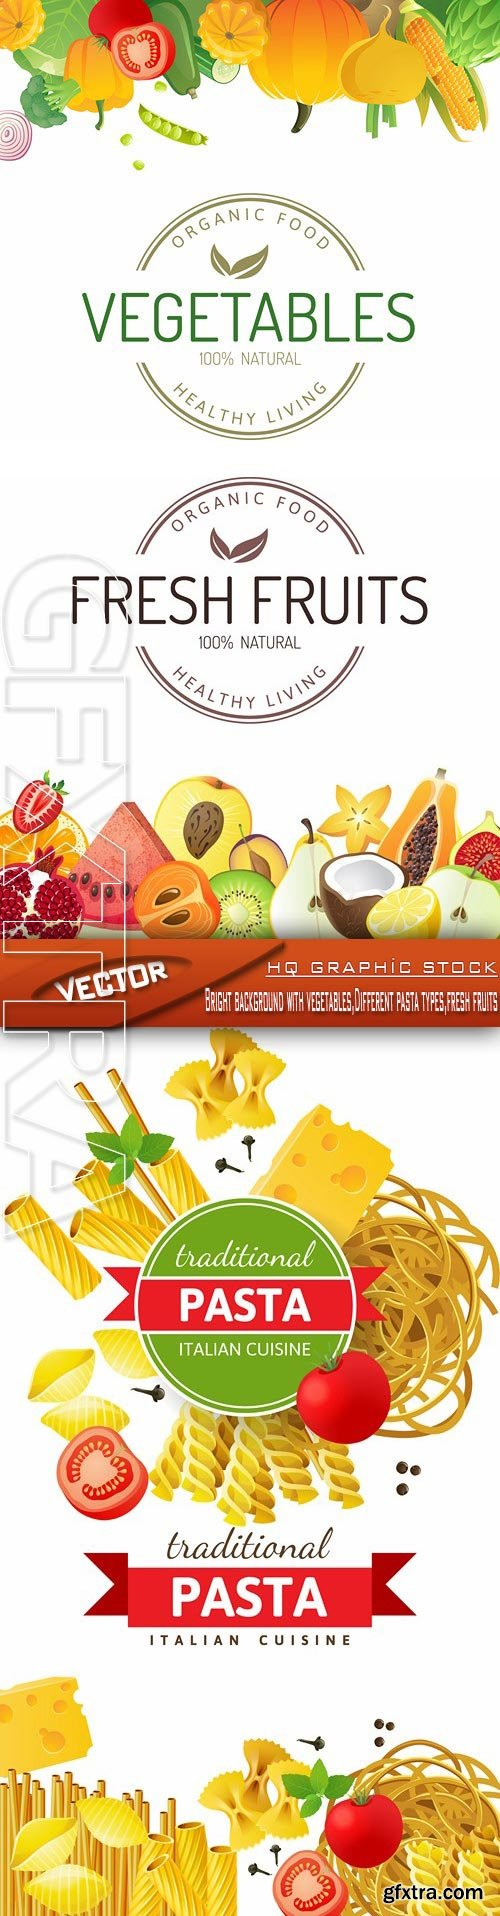 Stock Vector - Bright background with vegetables,Different pasta types,fresh fruits